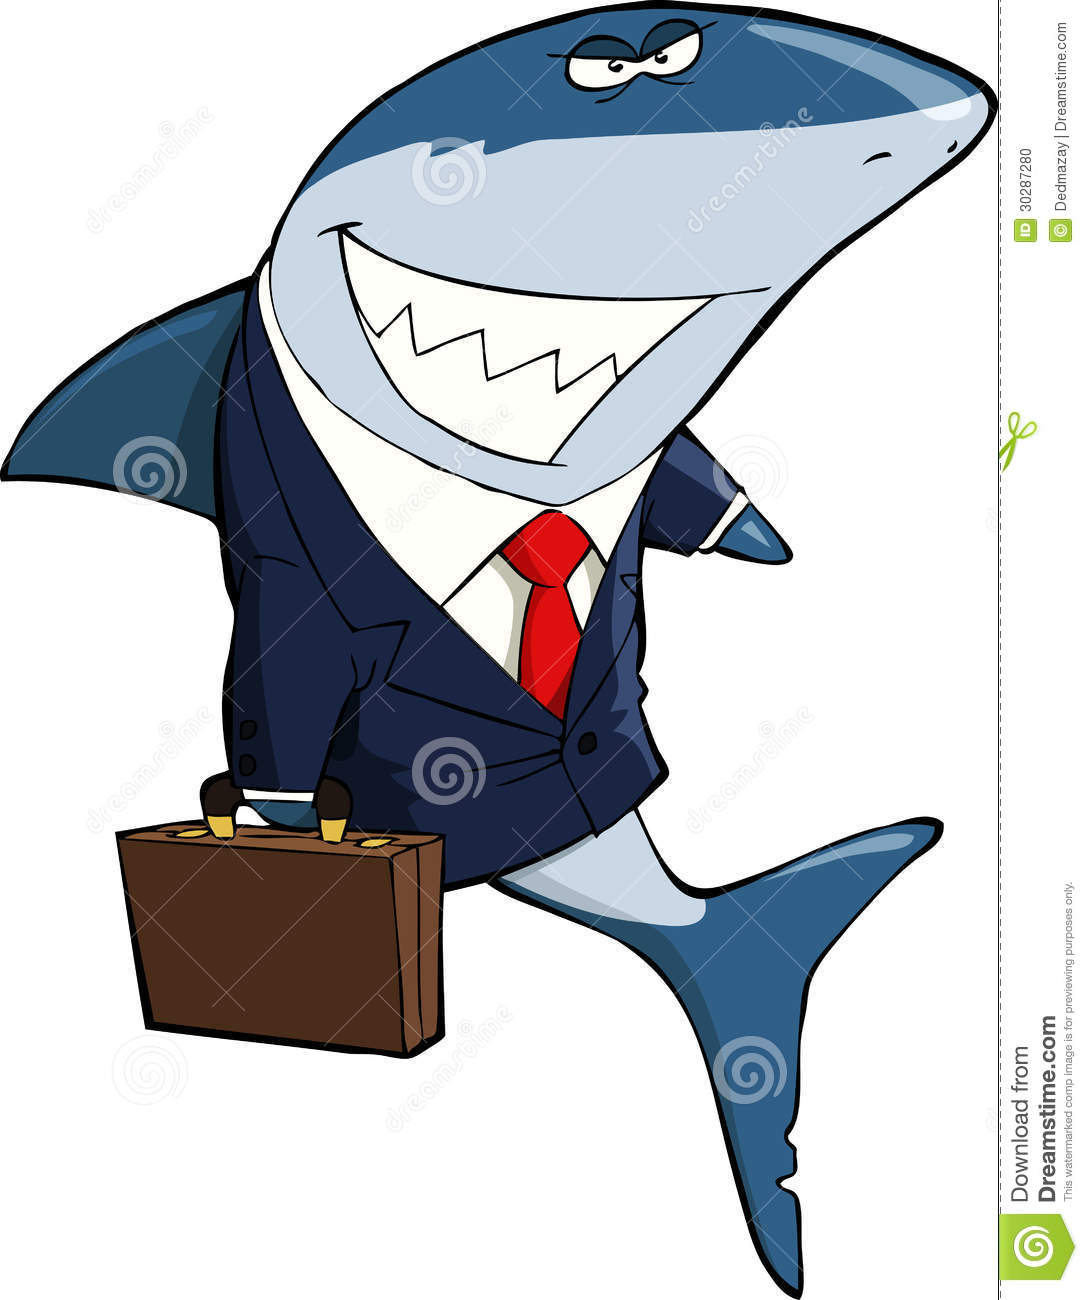 Loan Shark Business